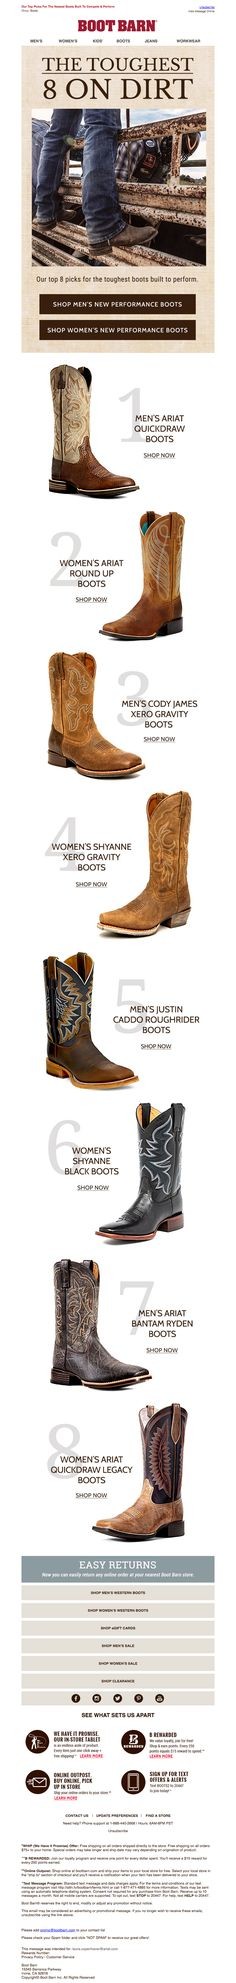 bootbarn6 Email Design Inspiration, Email Newsletters, Women, Woman